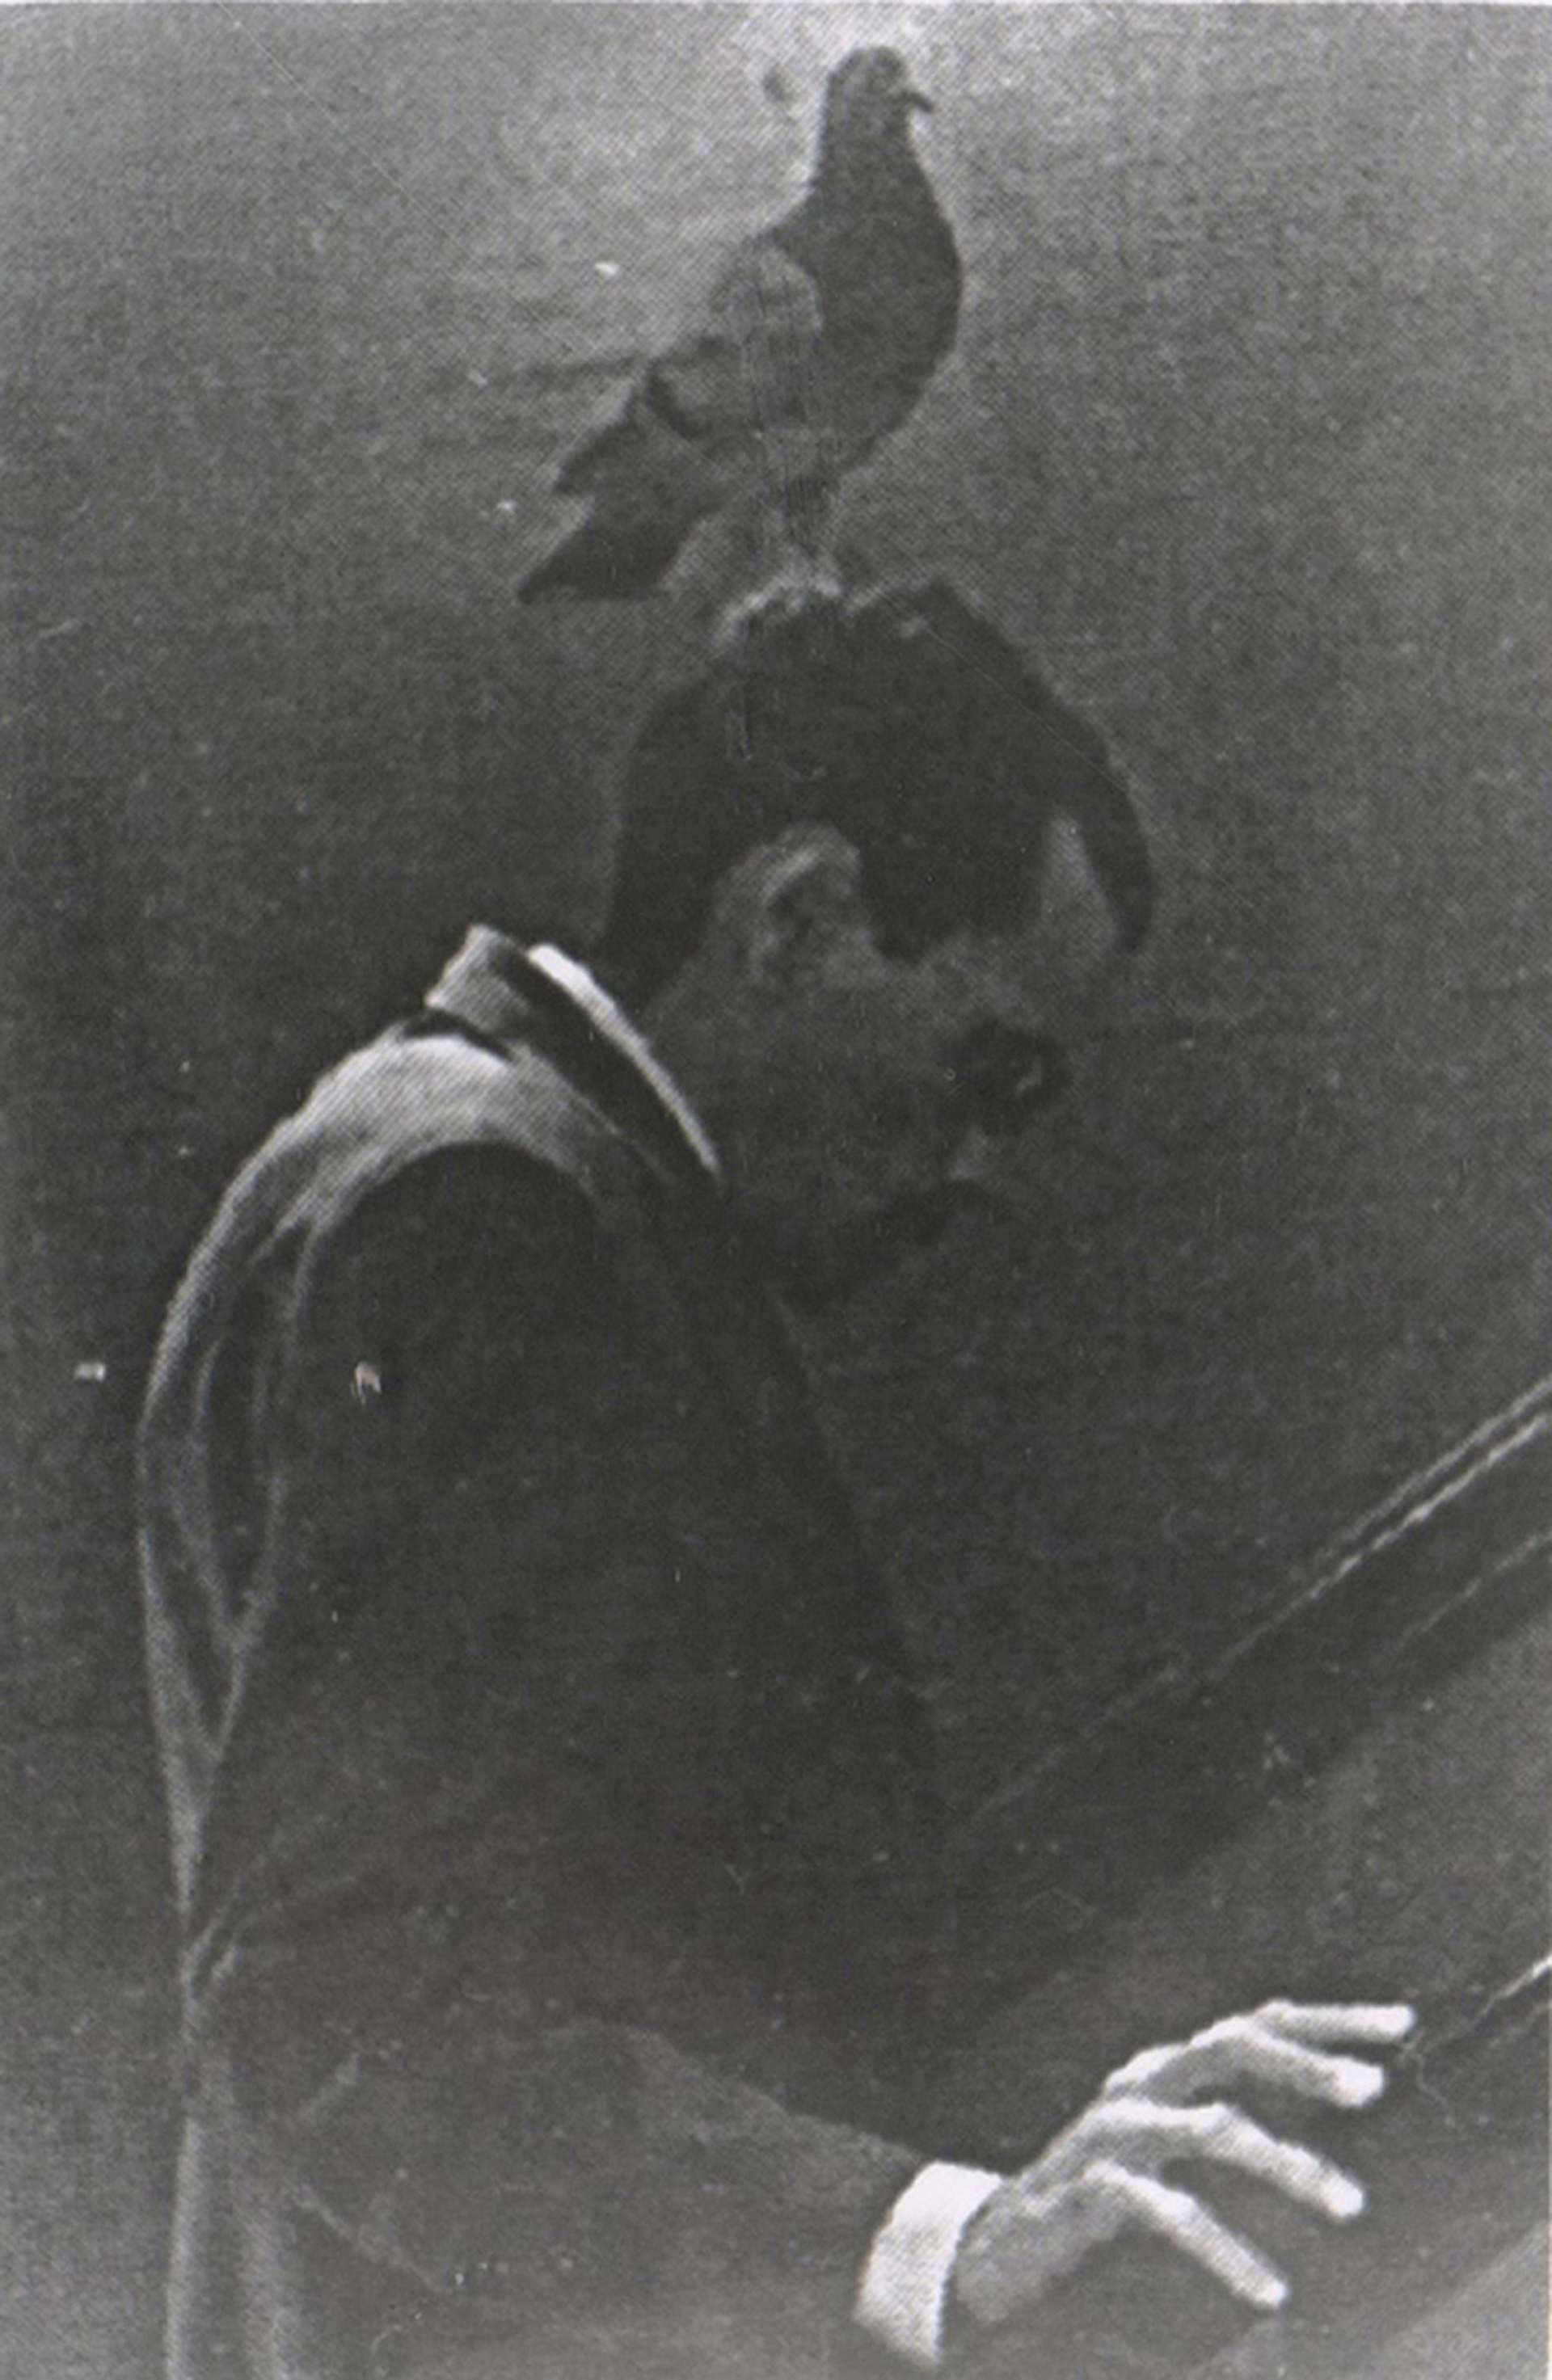 Spy with his spy-pigeon on a mission, 1949. The memoirs of Yan Khtovich, 2015-2017. Taking the form of a personal diary and memoir, the book included images, documents, collages, and contemporary photographs printed with vintage printing techniques